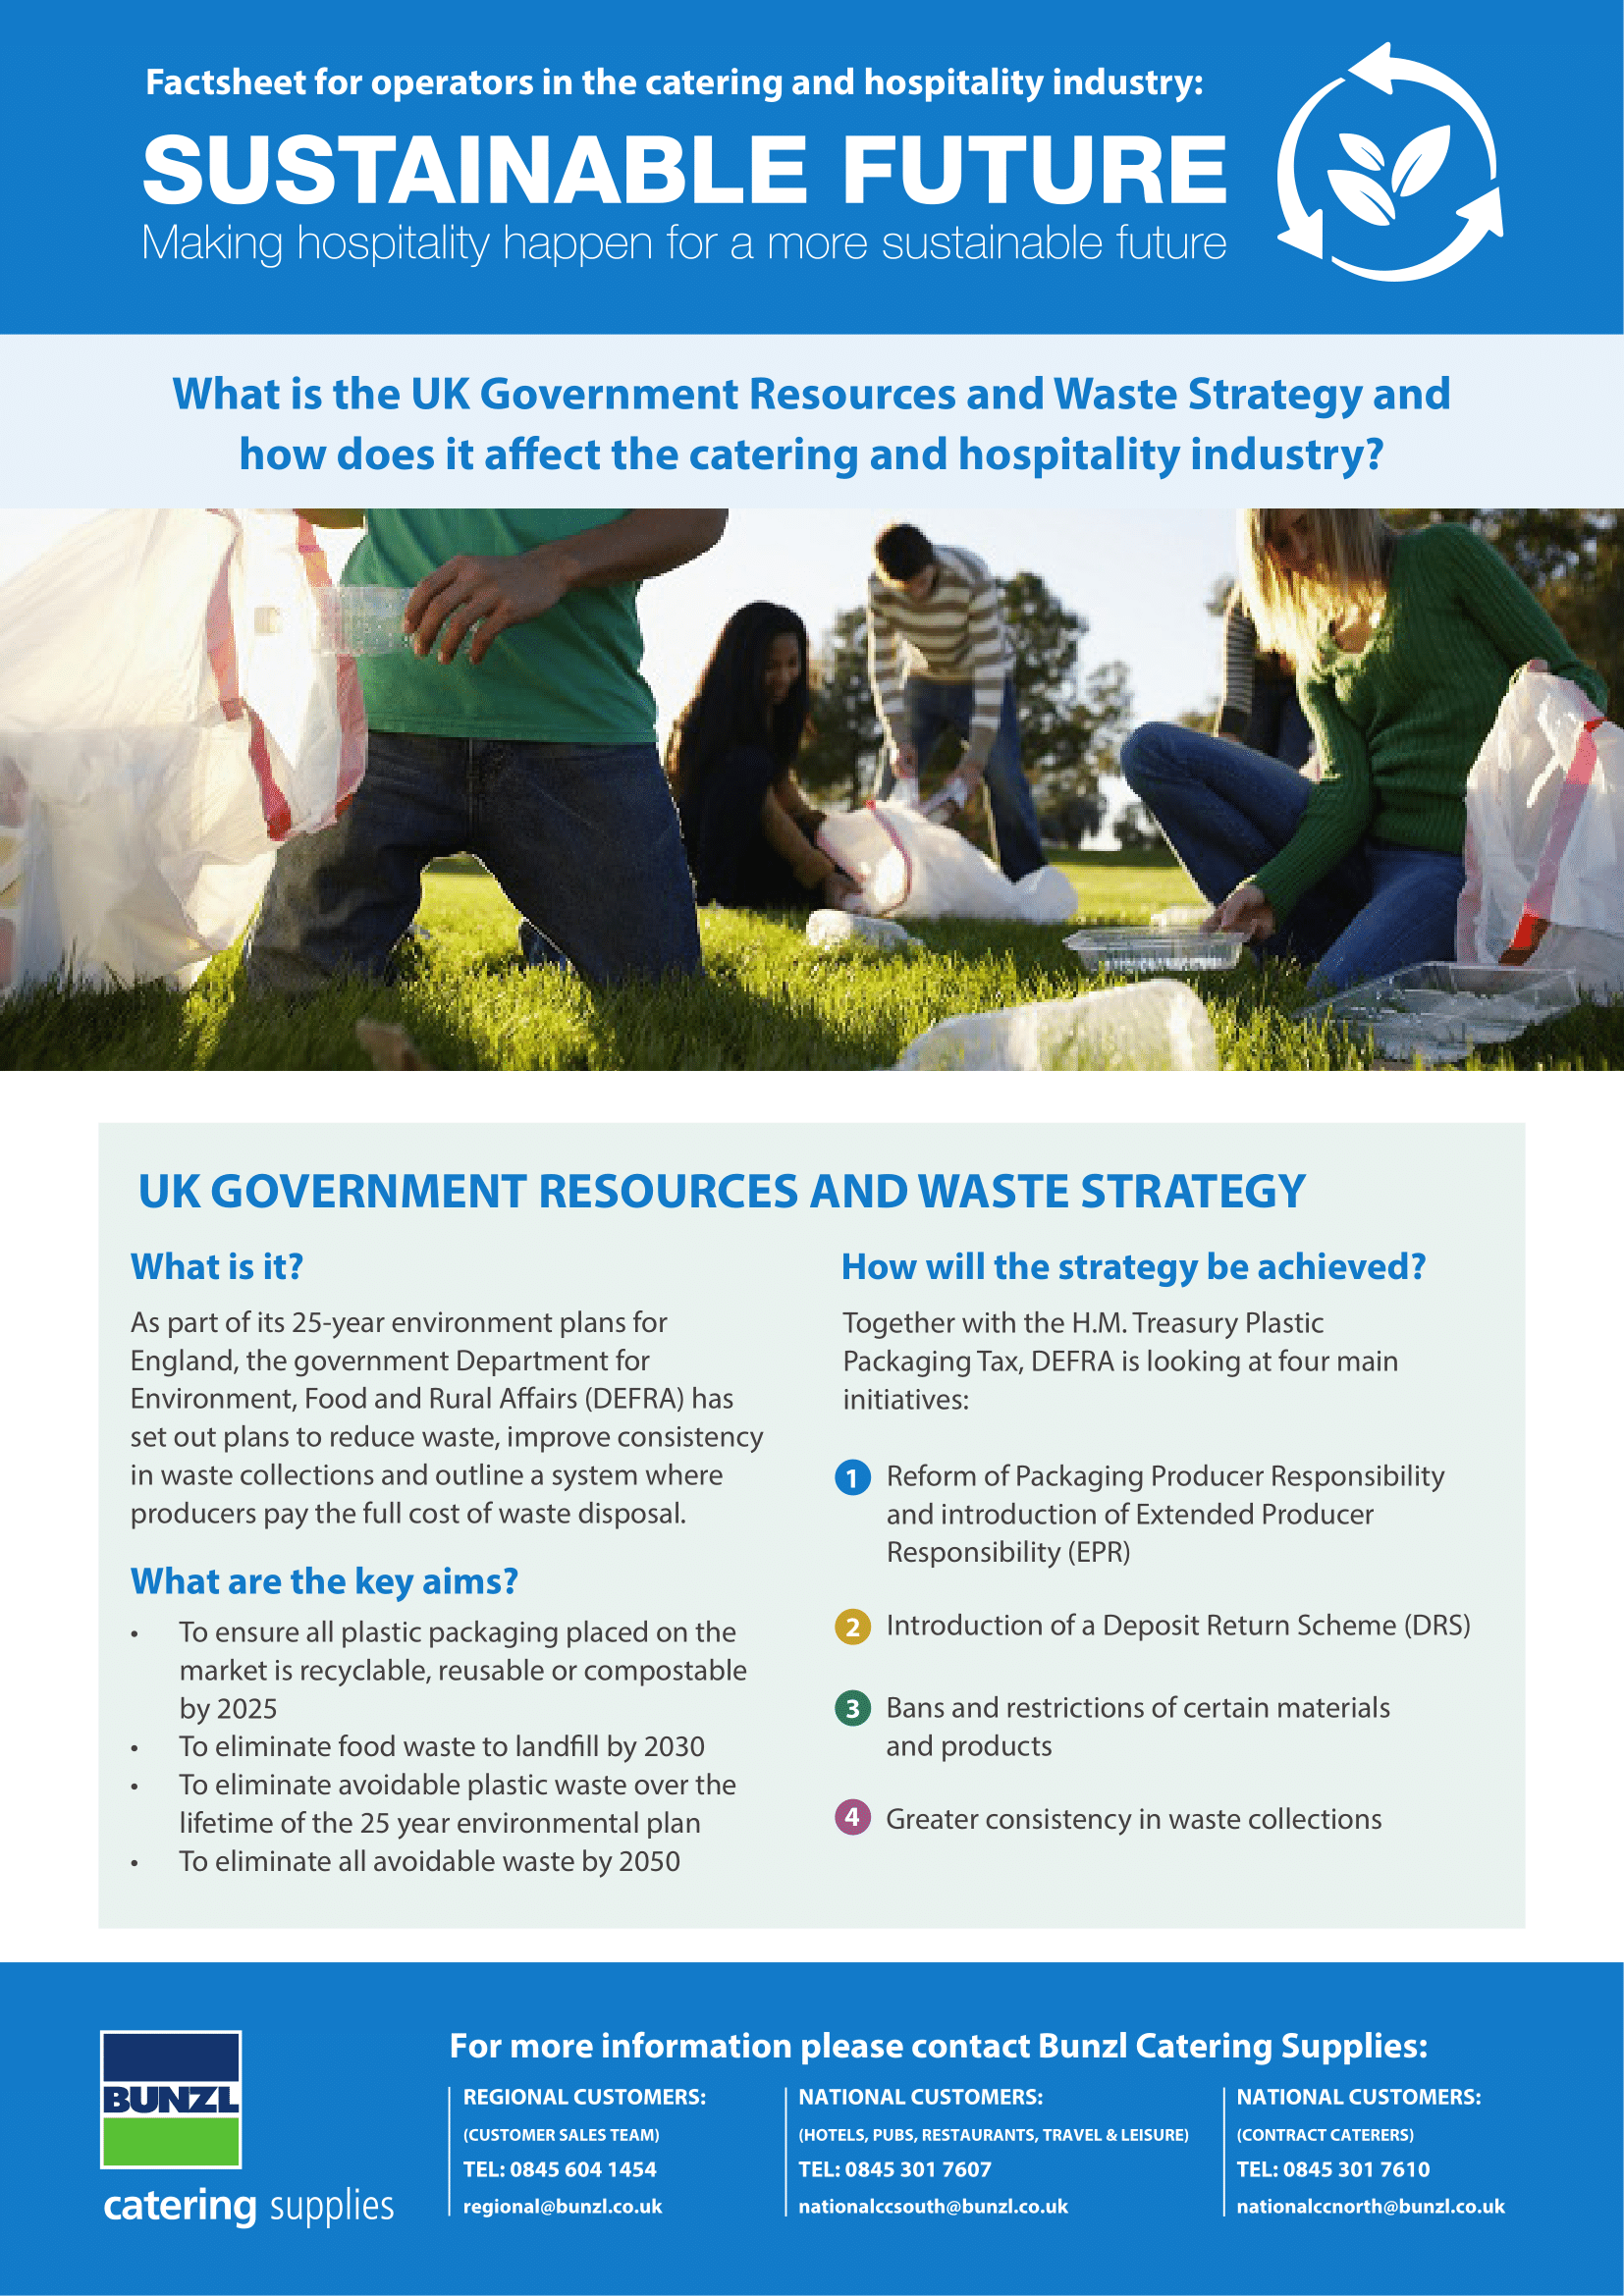 BCS SF UK Resources & Waste Strategy Aug 2019-1.png